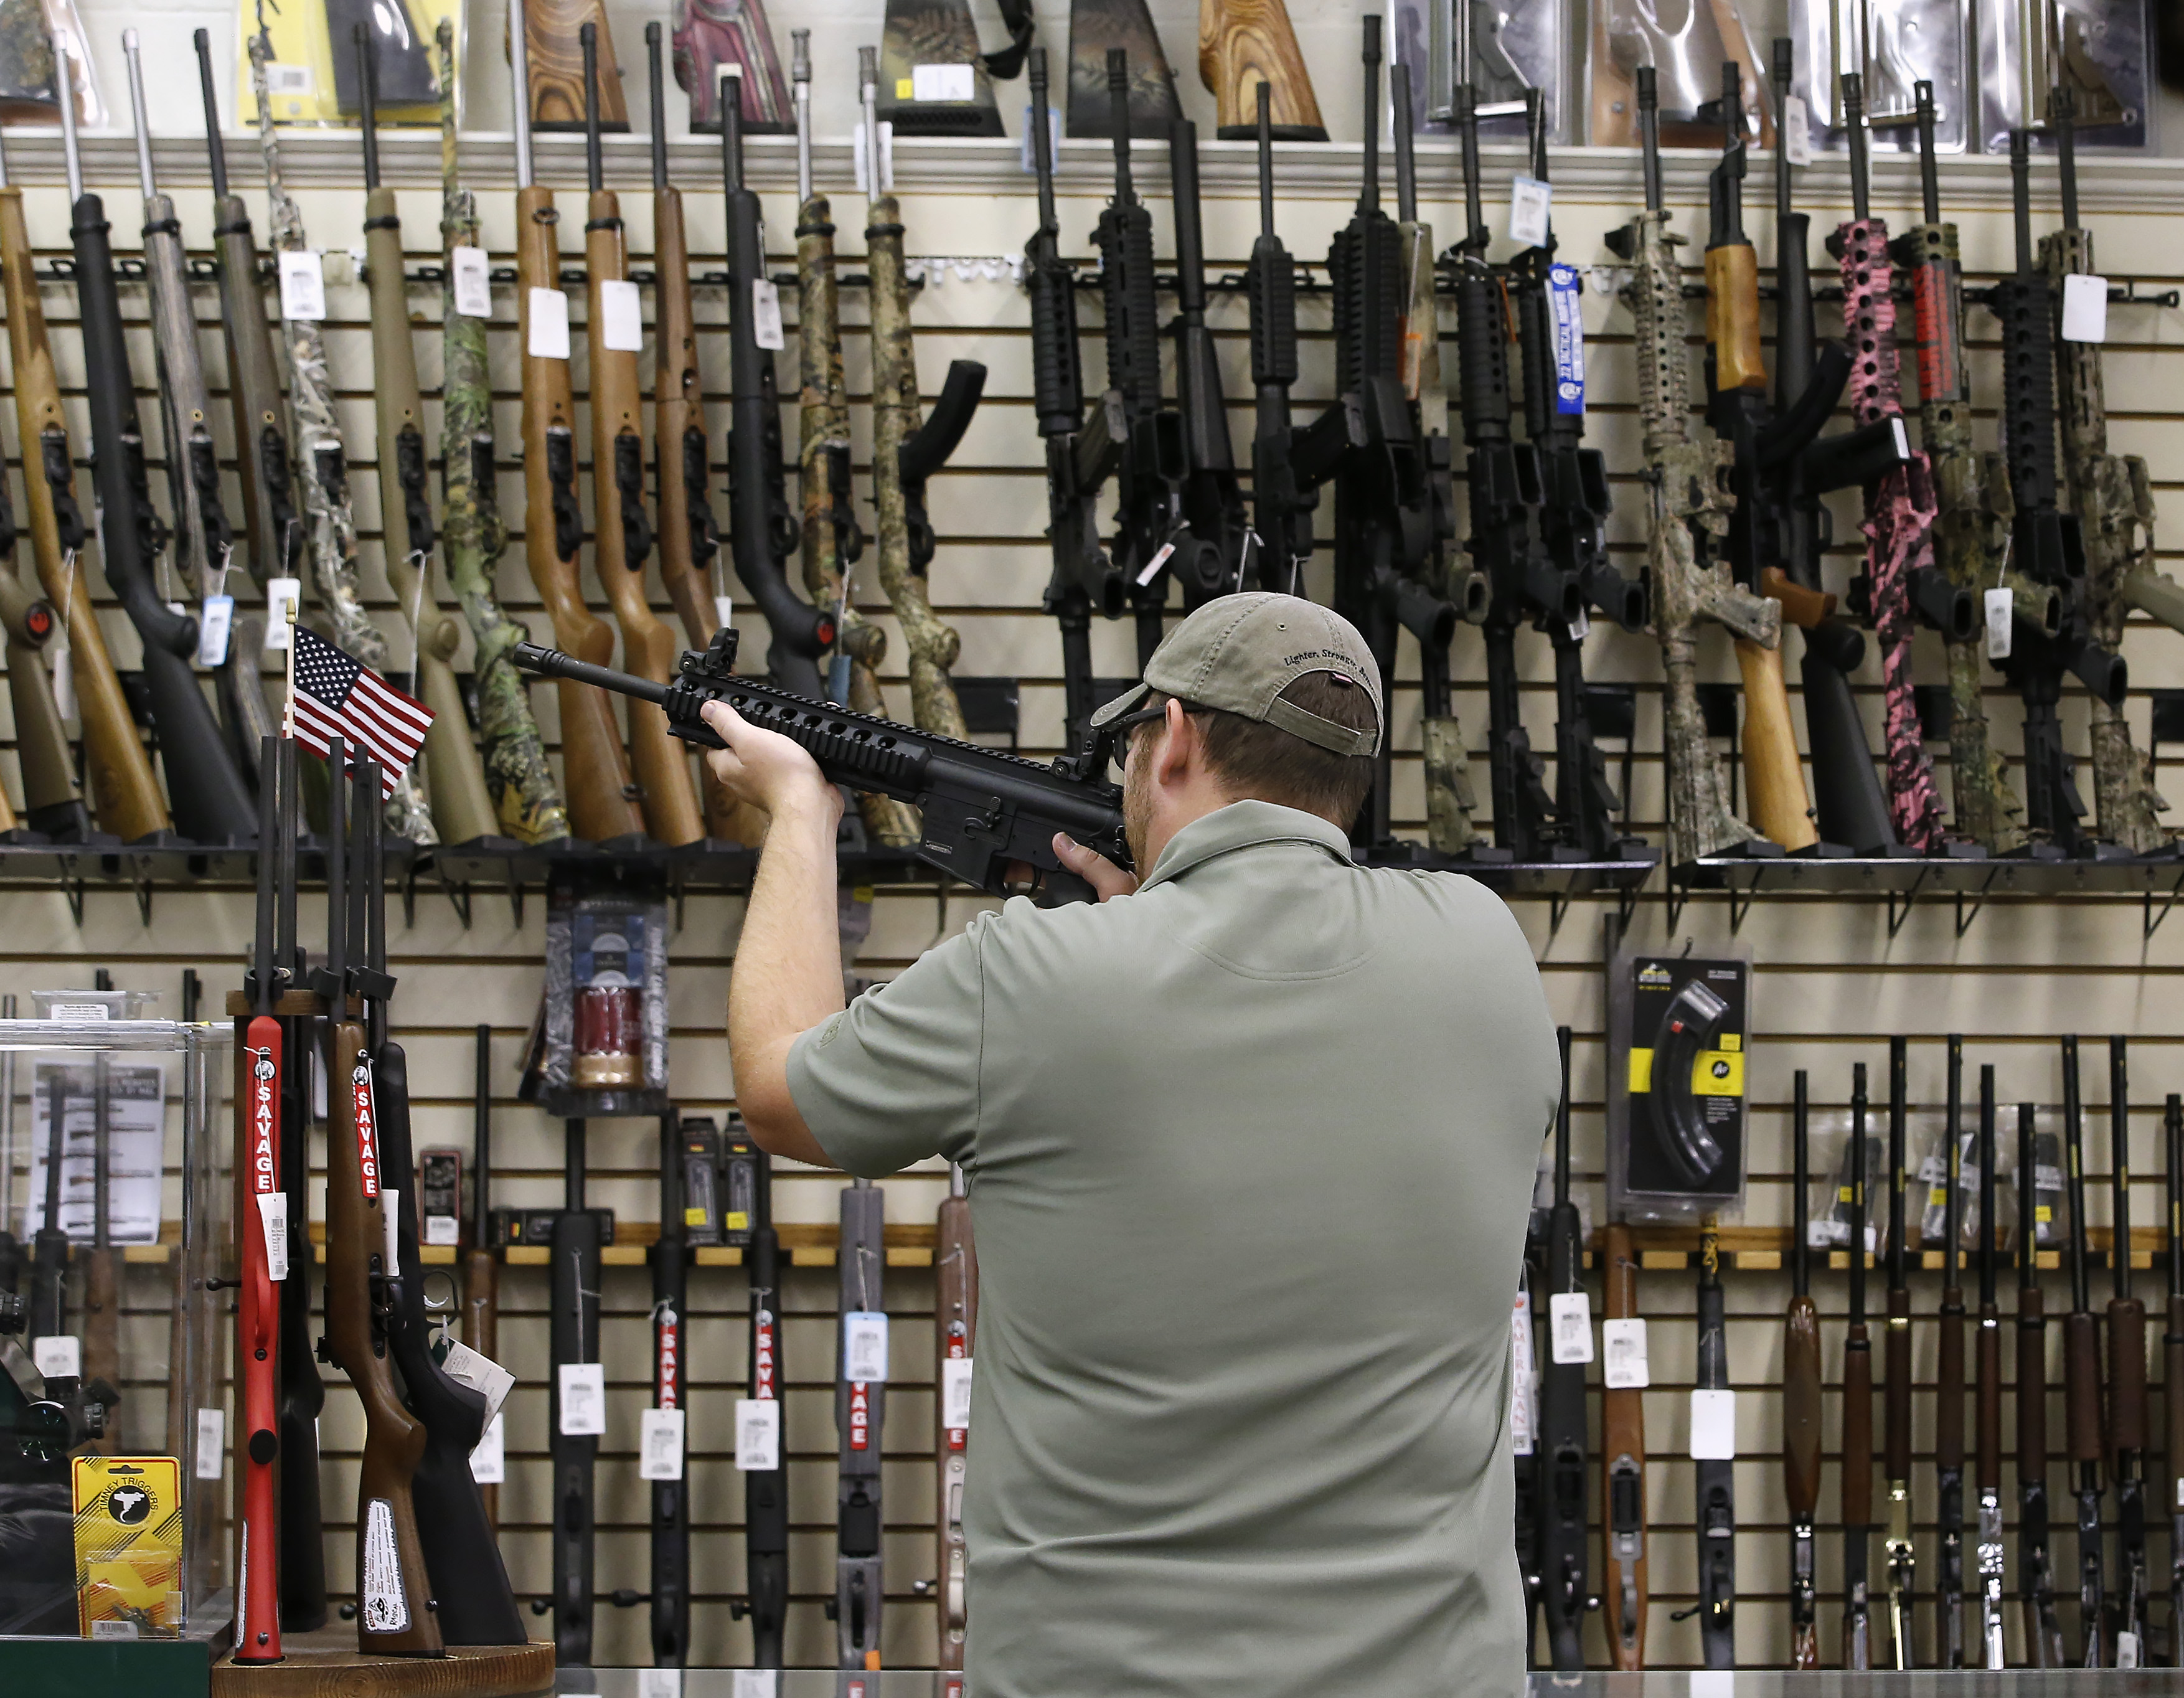 Inside A Gun And Ammunition Store As Debate About Gun Ownership Continues During U.S. Elections